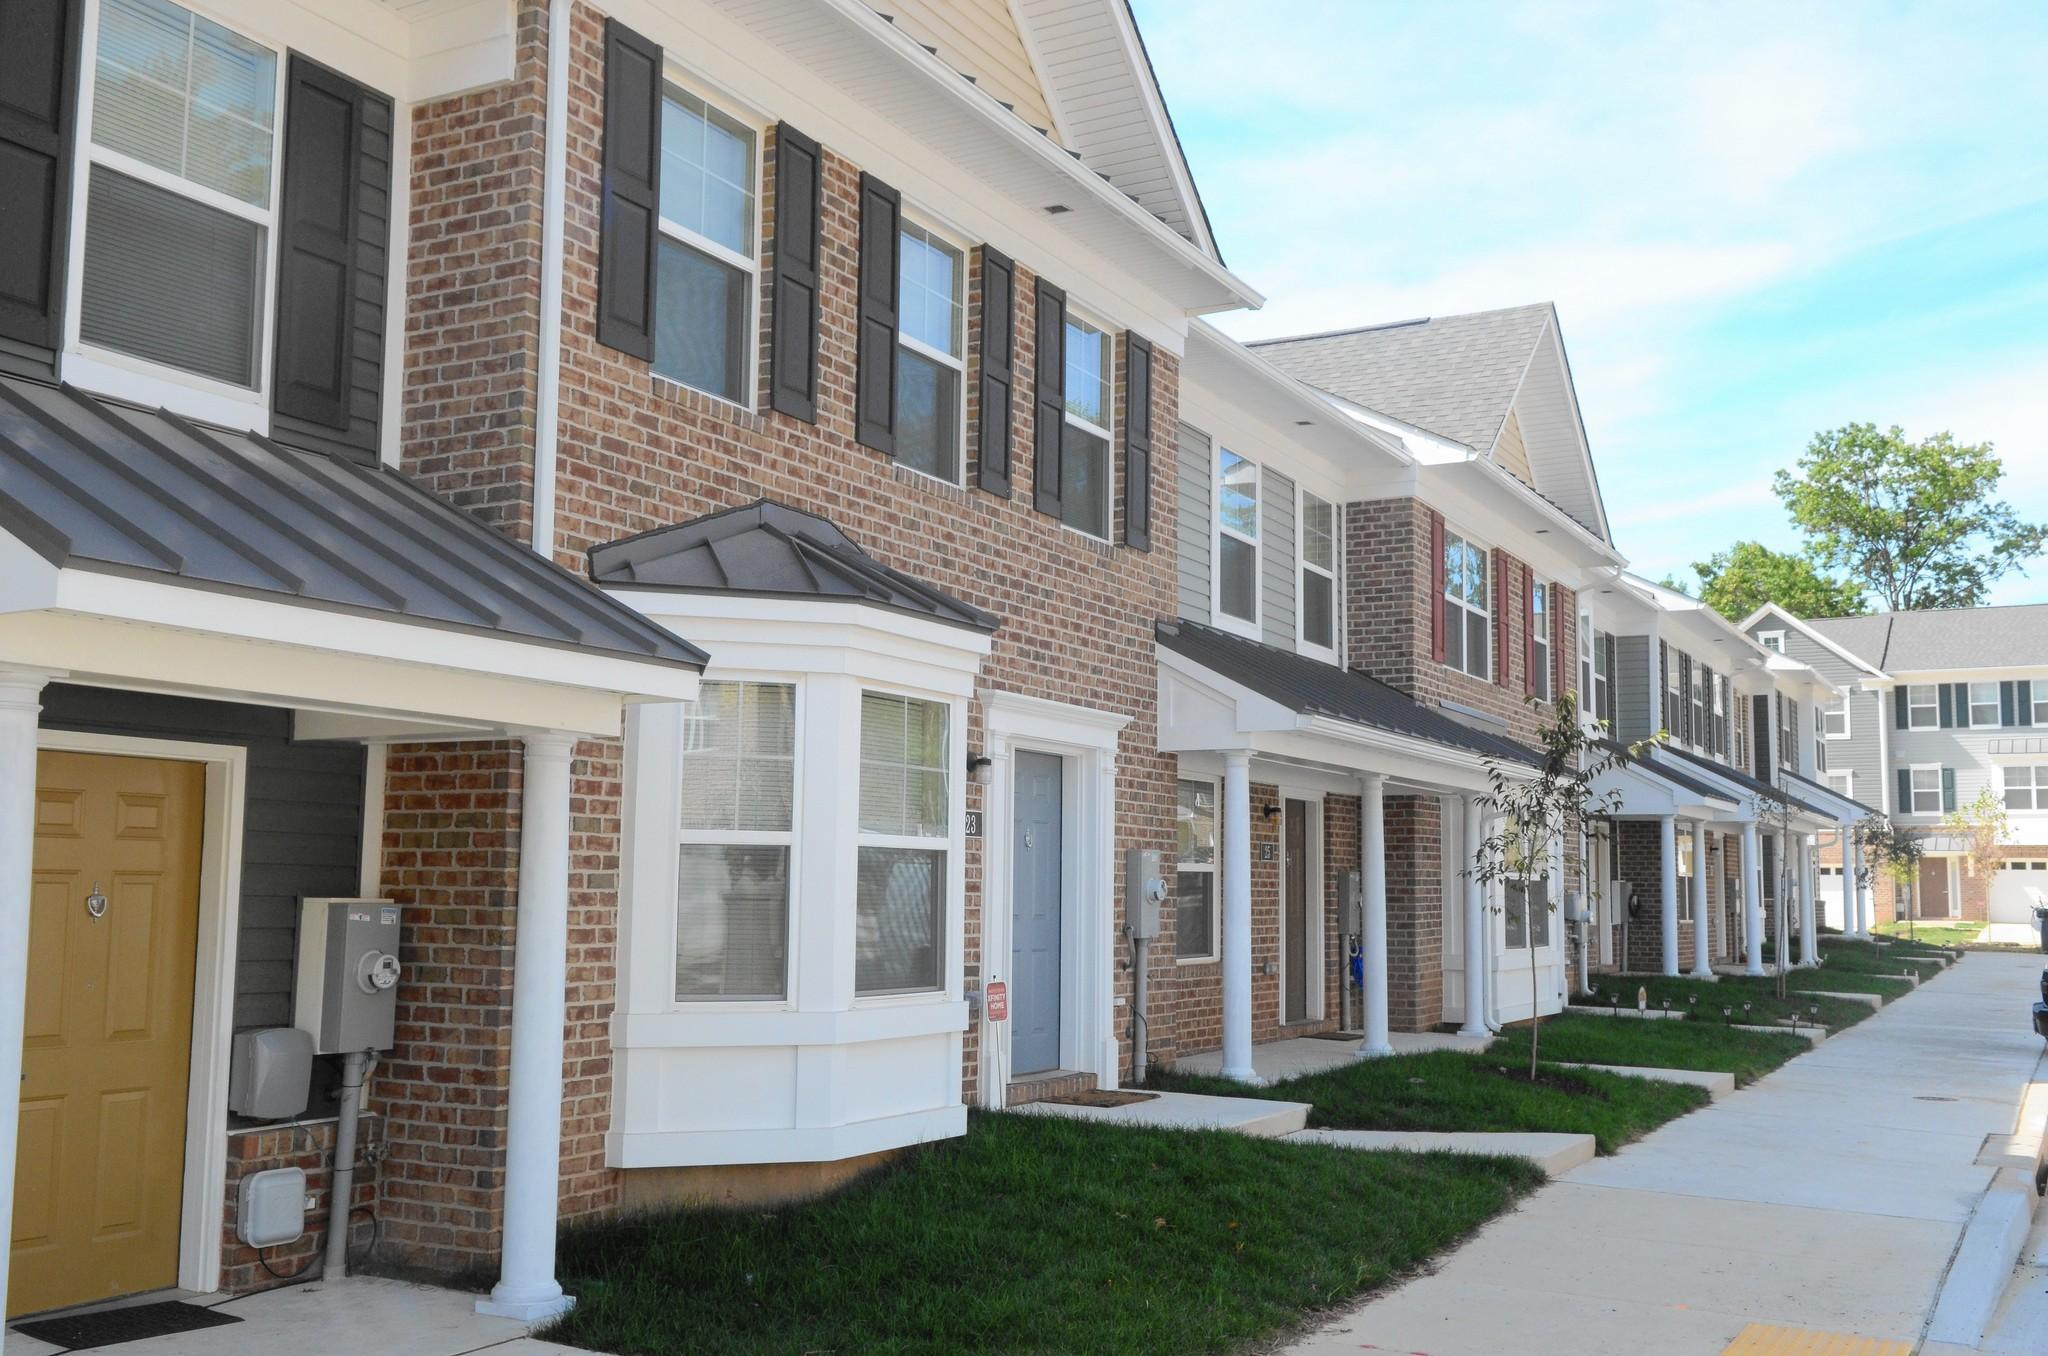 rent to own housing to open in riverview baltimore sun